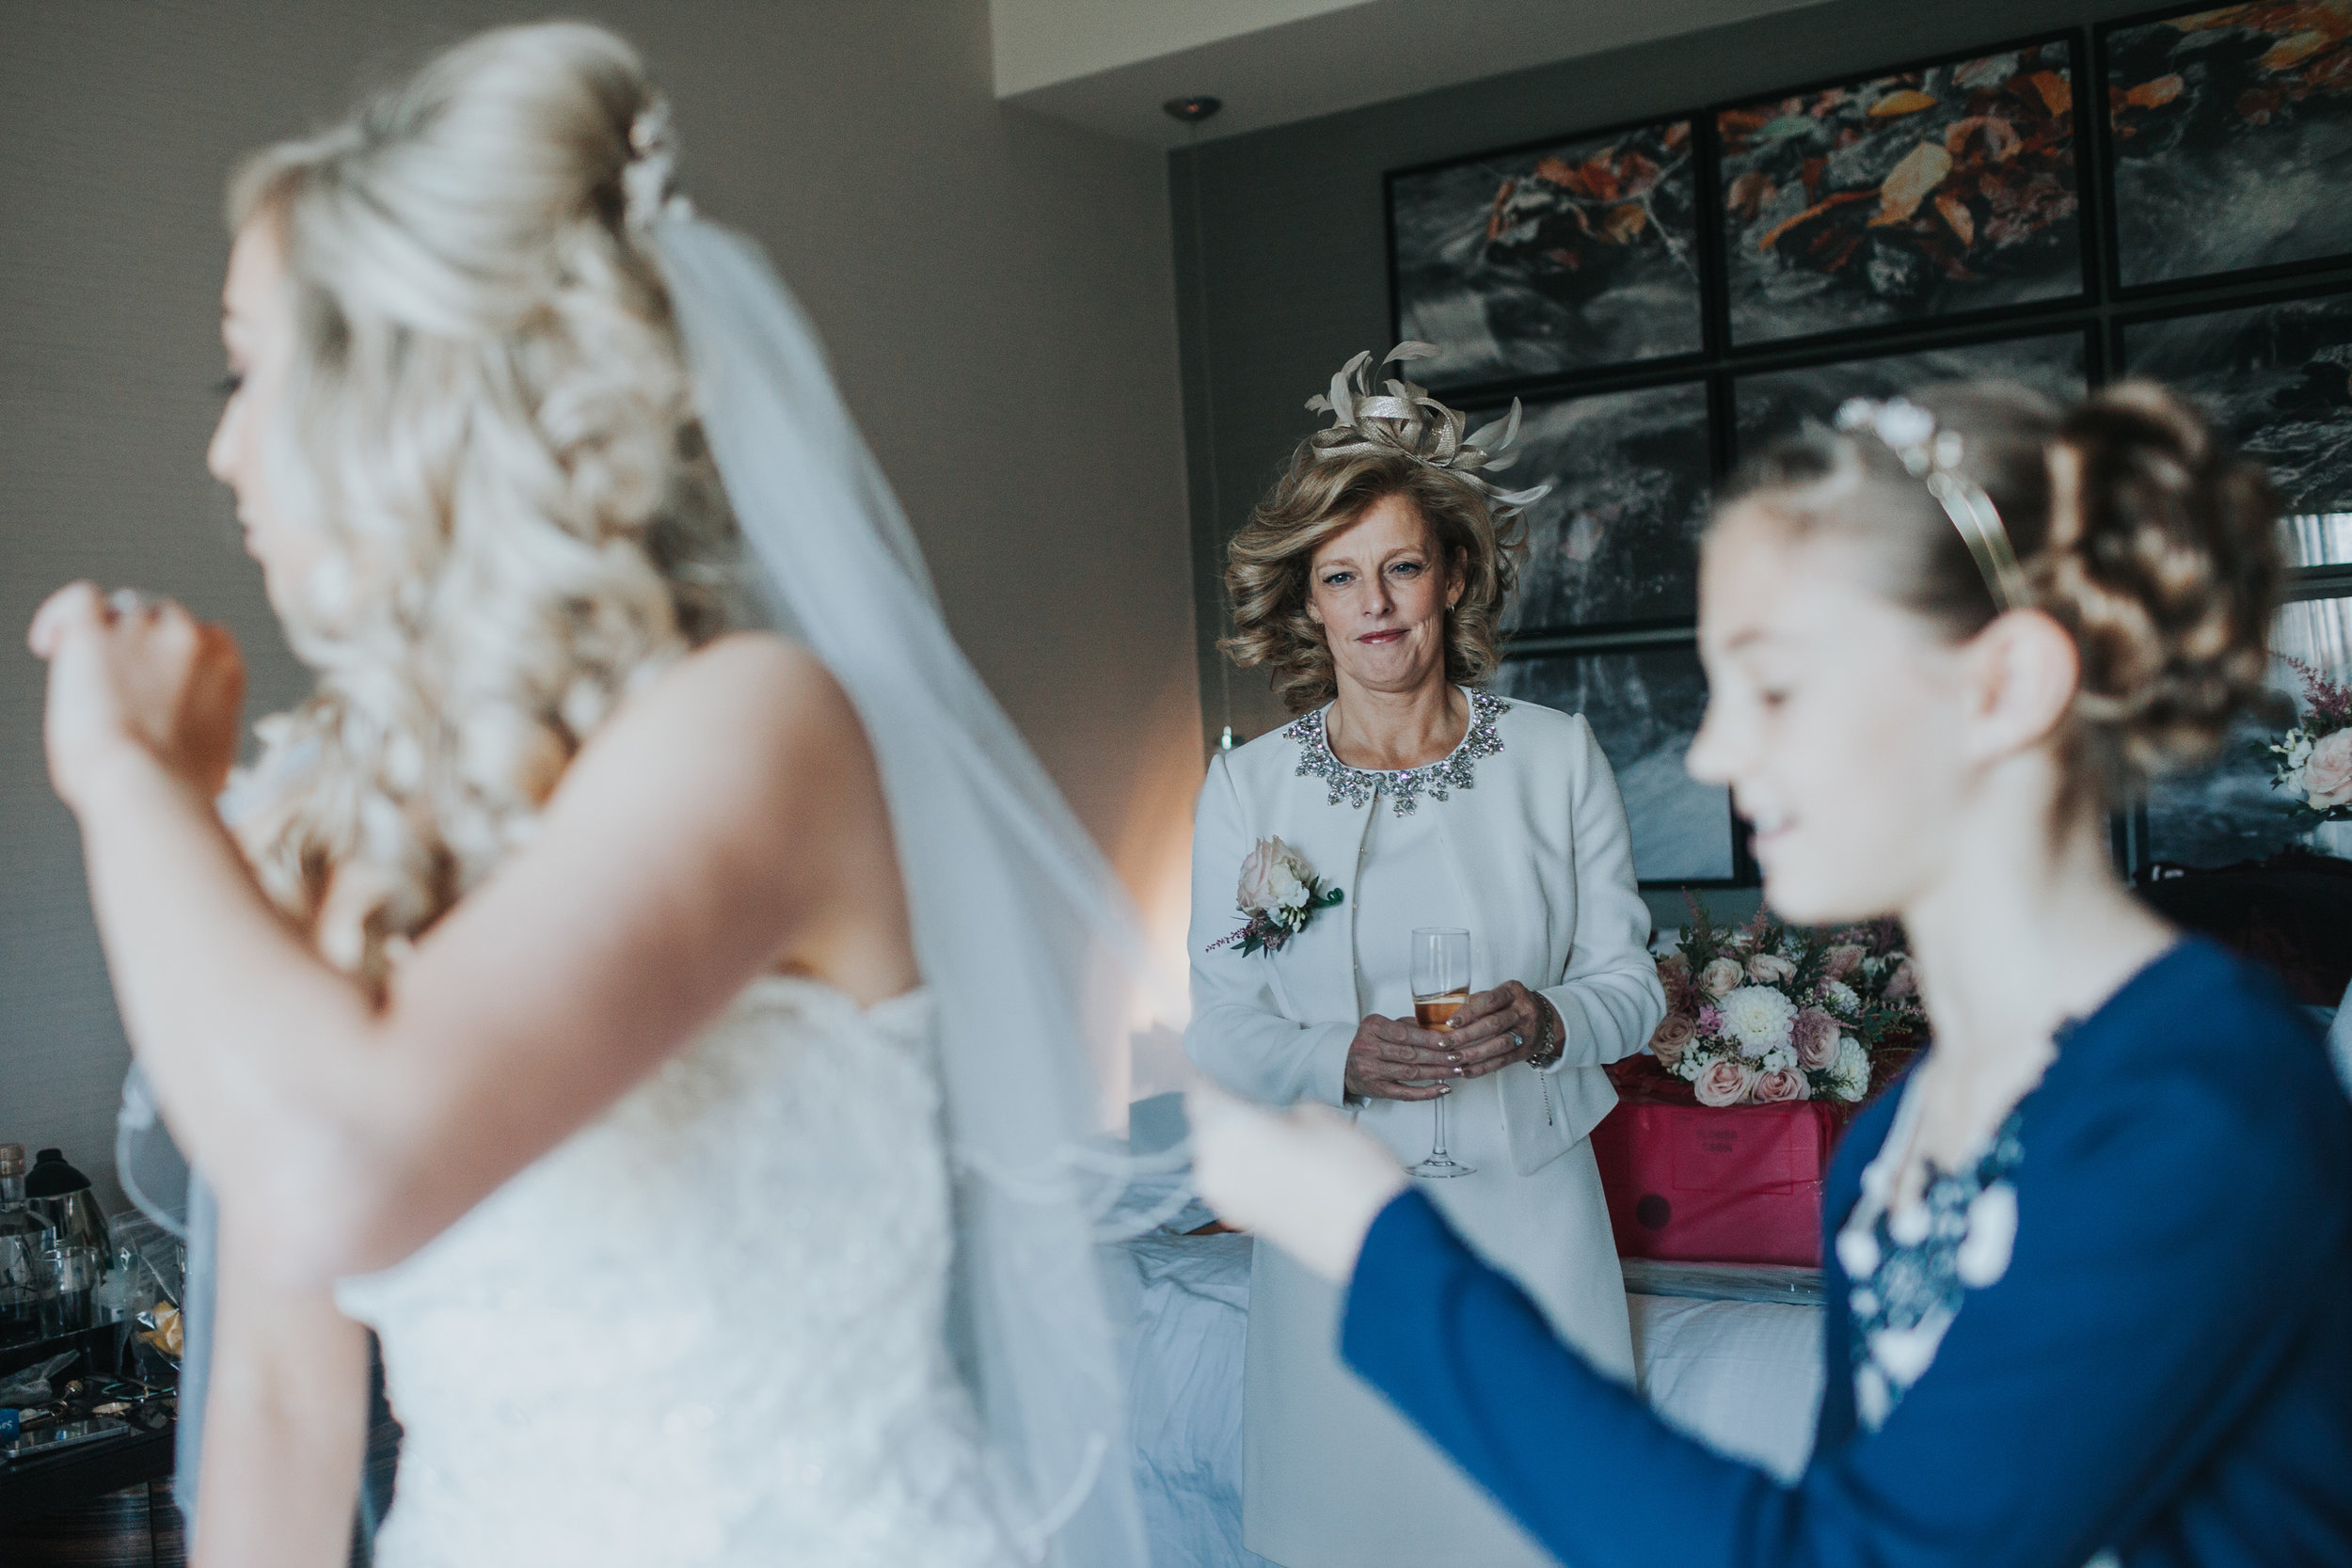 Mother of the Bride looks proudly as her daughter puts on her wedding dress.